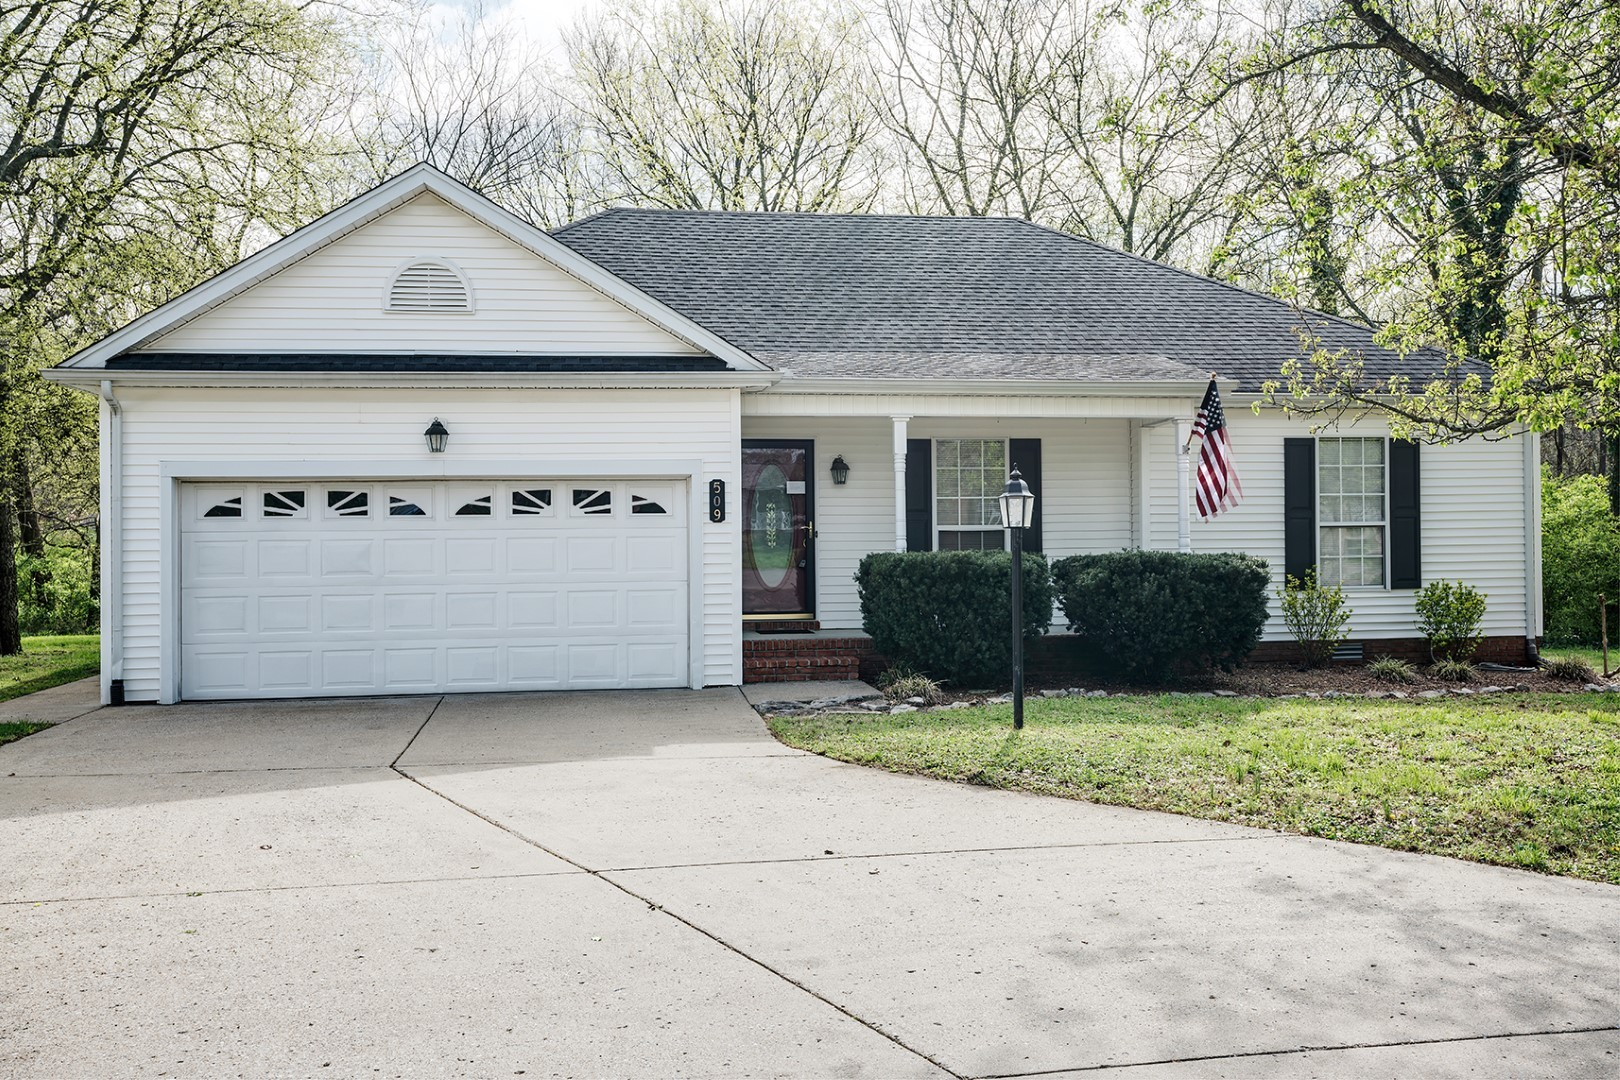 Well maintained home on large treed lot that backs to creek. Newer roof, almost new fence & 14'x14' deck, hot water heater & refrigerator. New carpet. Seller offering 2-10 home warranty with acceptable offer.